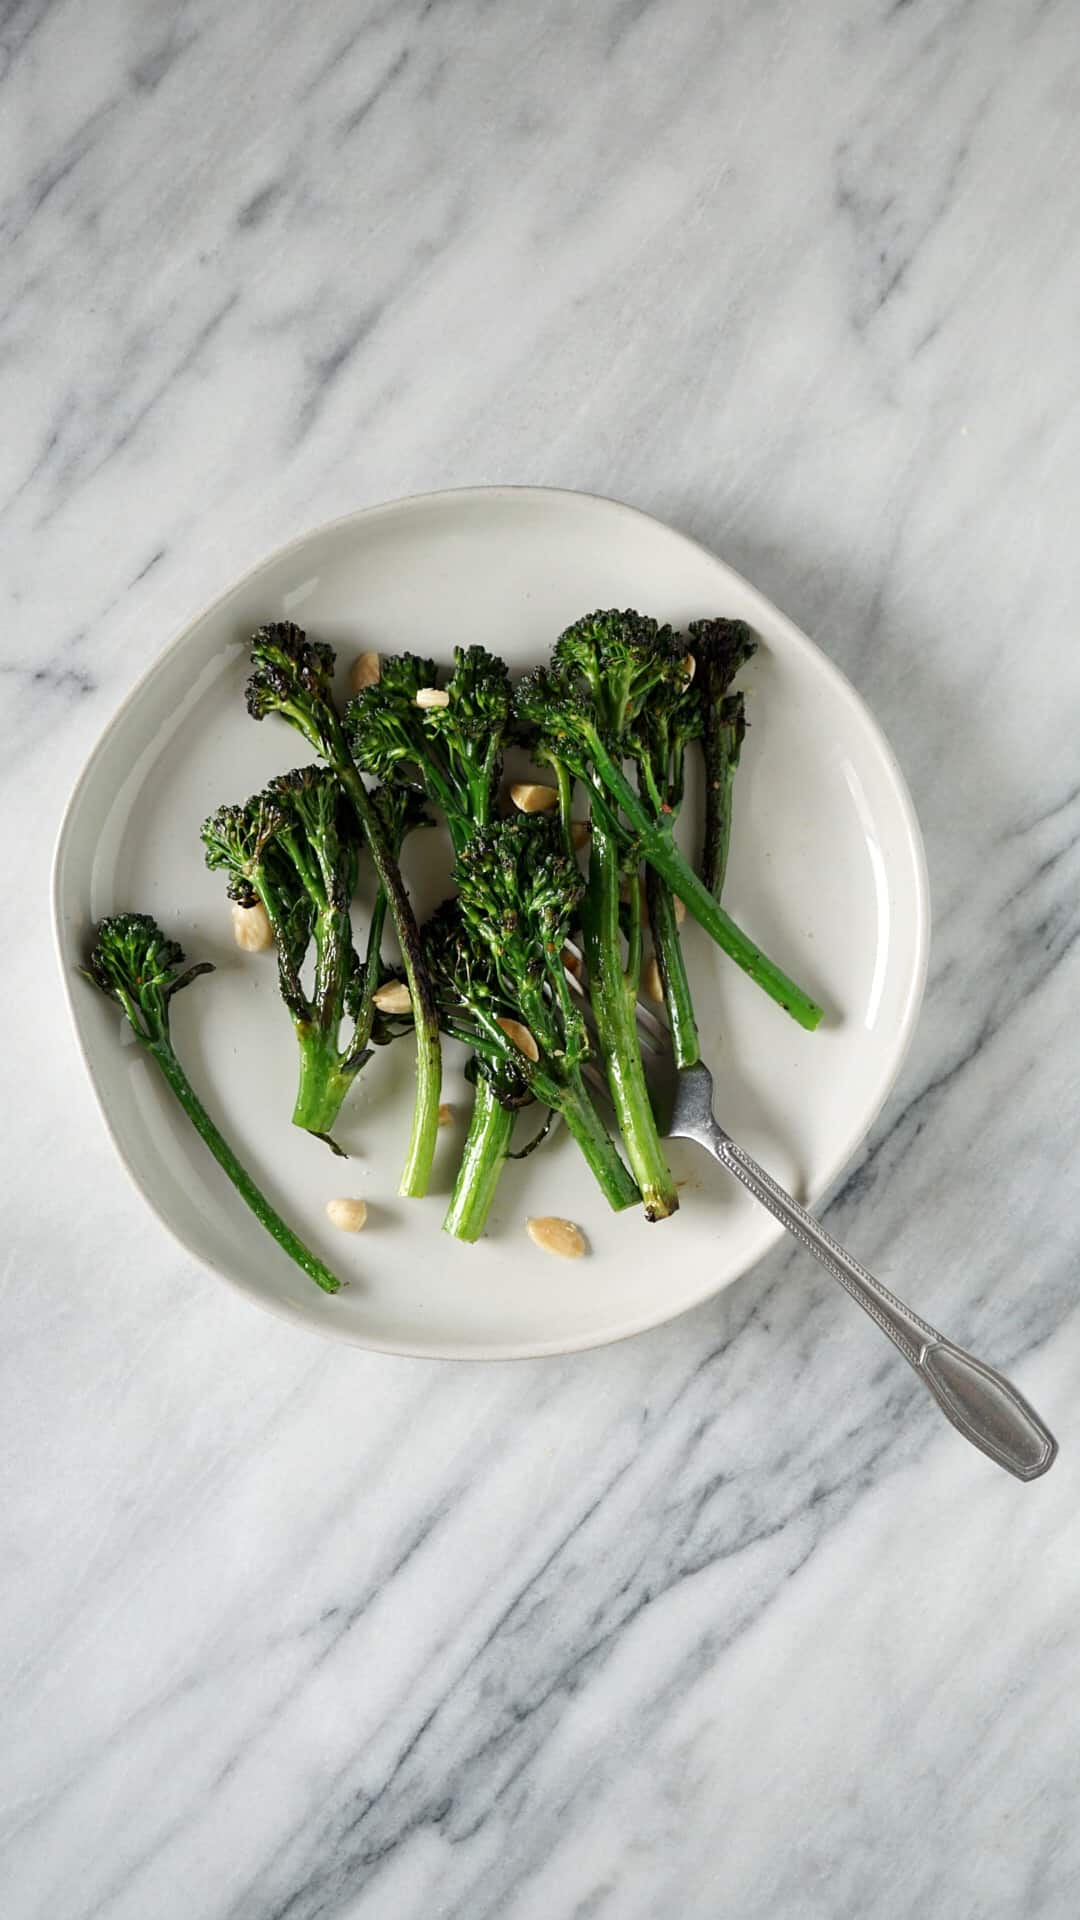 Broccolini on a white plate with a fork